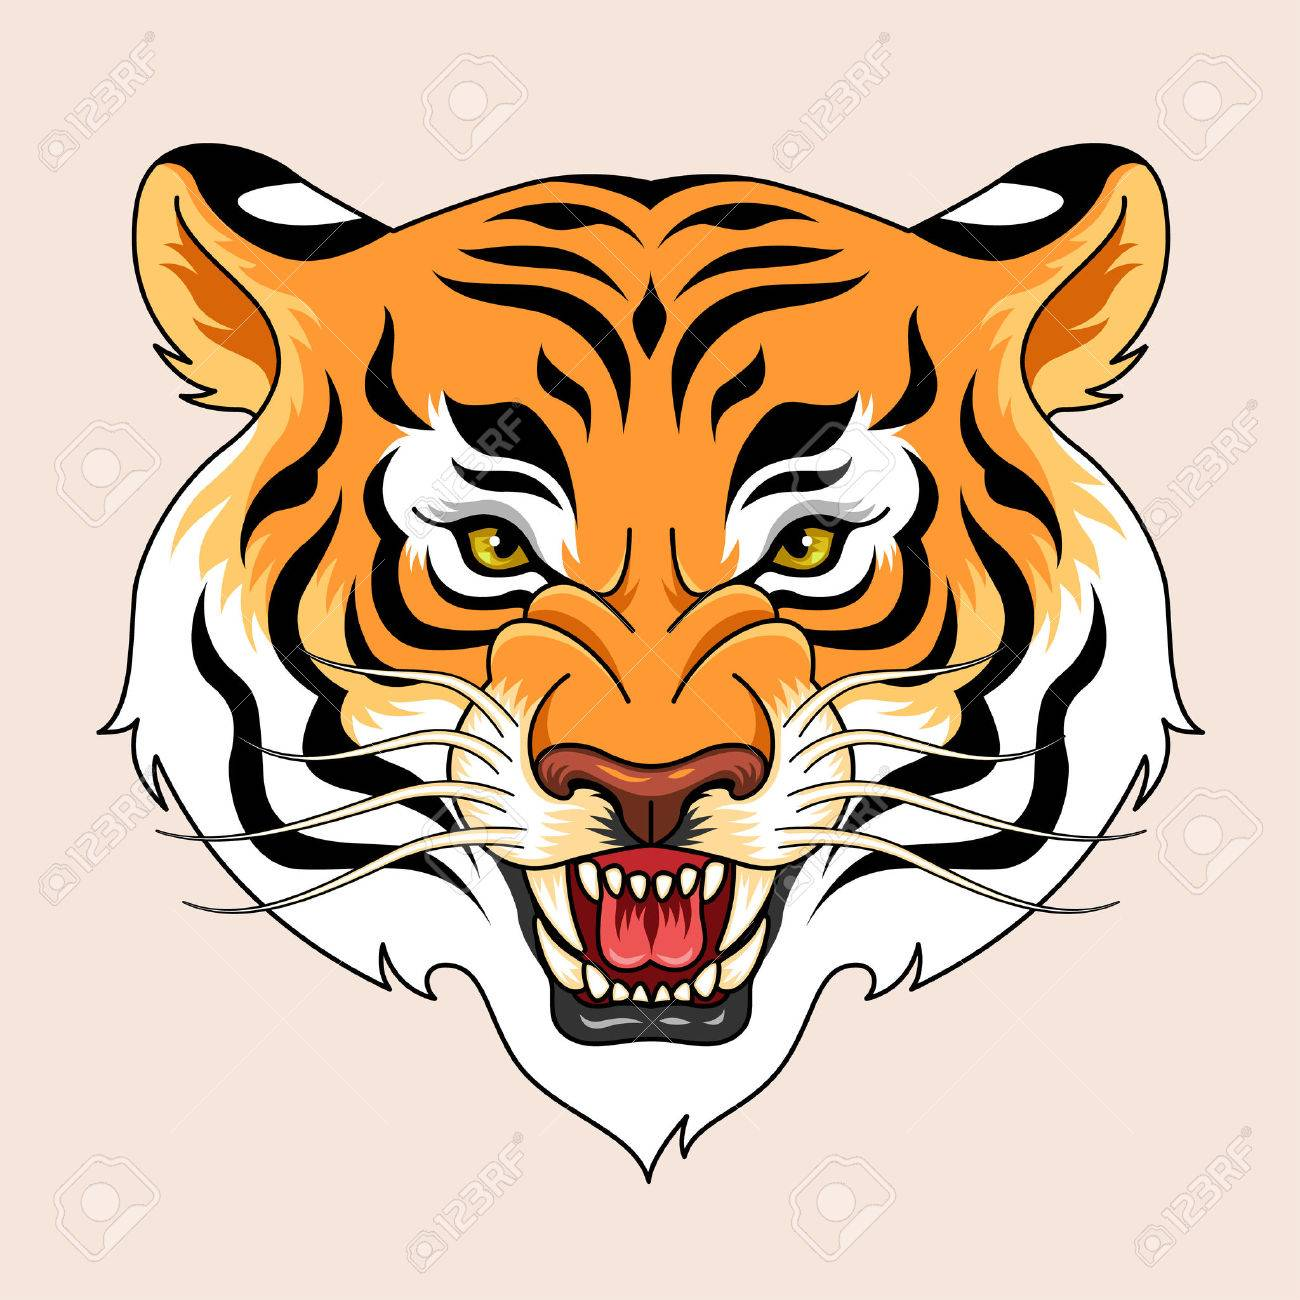 Roaring Tiger S Head Traditional Tattoo Symbol For Your Design